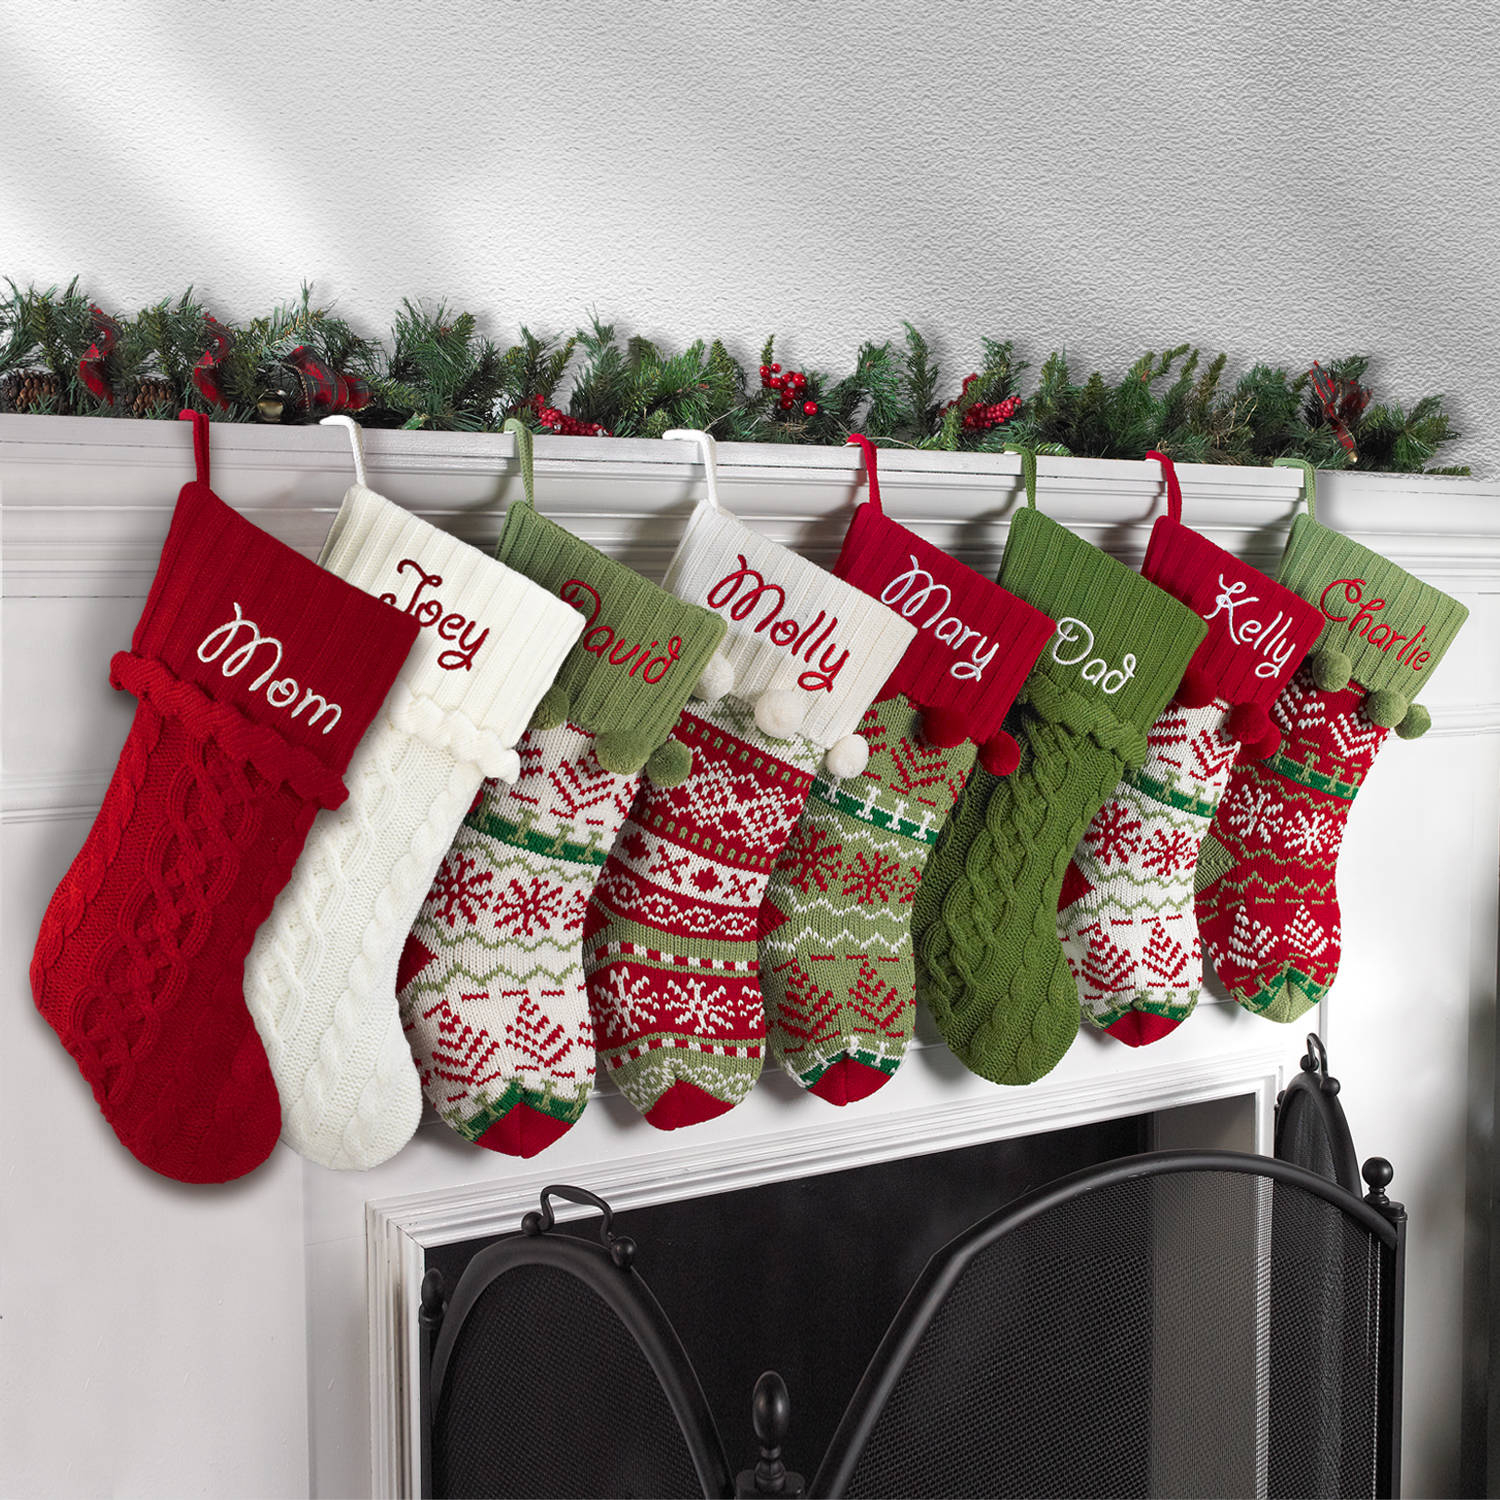 Knitted Christmas Stocking Patterns Personalized Using Kit To Knit Christmas Stockings Crochet And Knitting